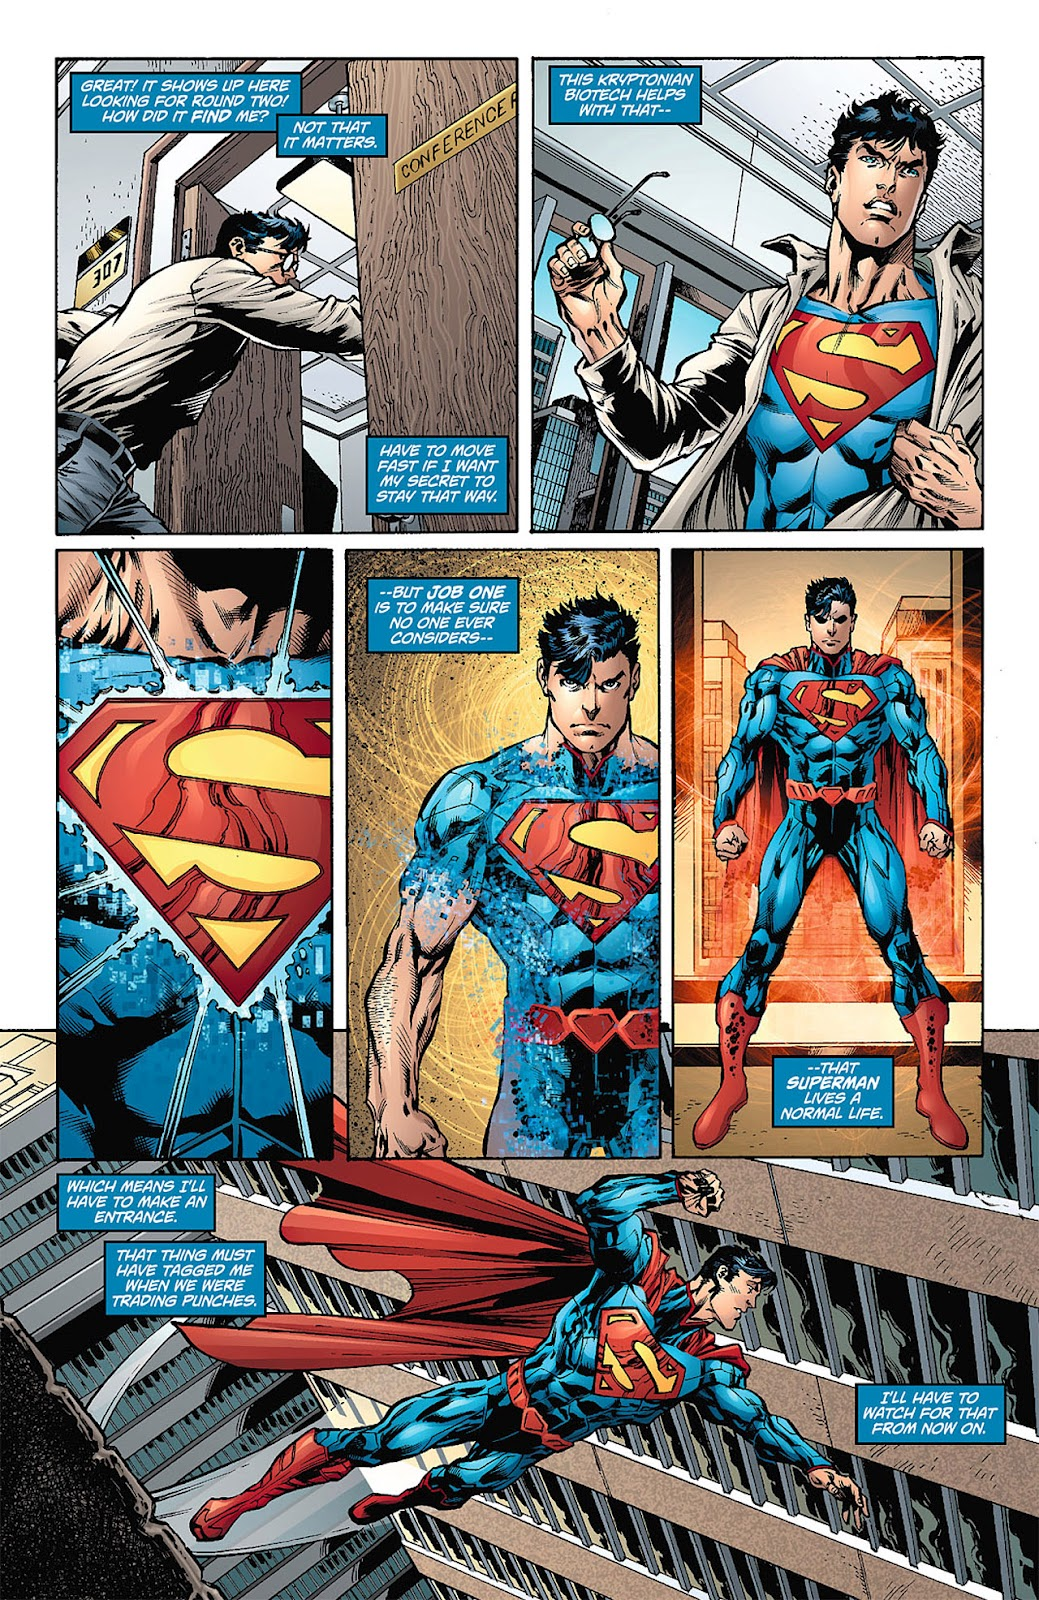 http://2.bp.blogspot.com/-nMp4RtE3ebo/T3lfhwKtJ7I/AAAAAAAADyo/nw_a2tARGnY/s1600/Superman-7-Spoilers-Changing-in-the-Conference-Room-New-52-DC-Comics.jpg